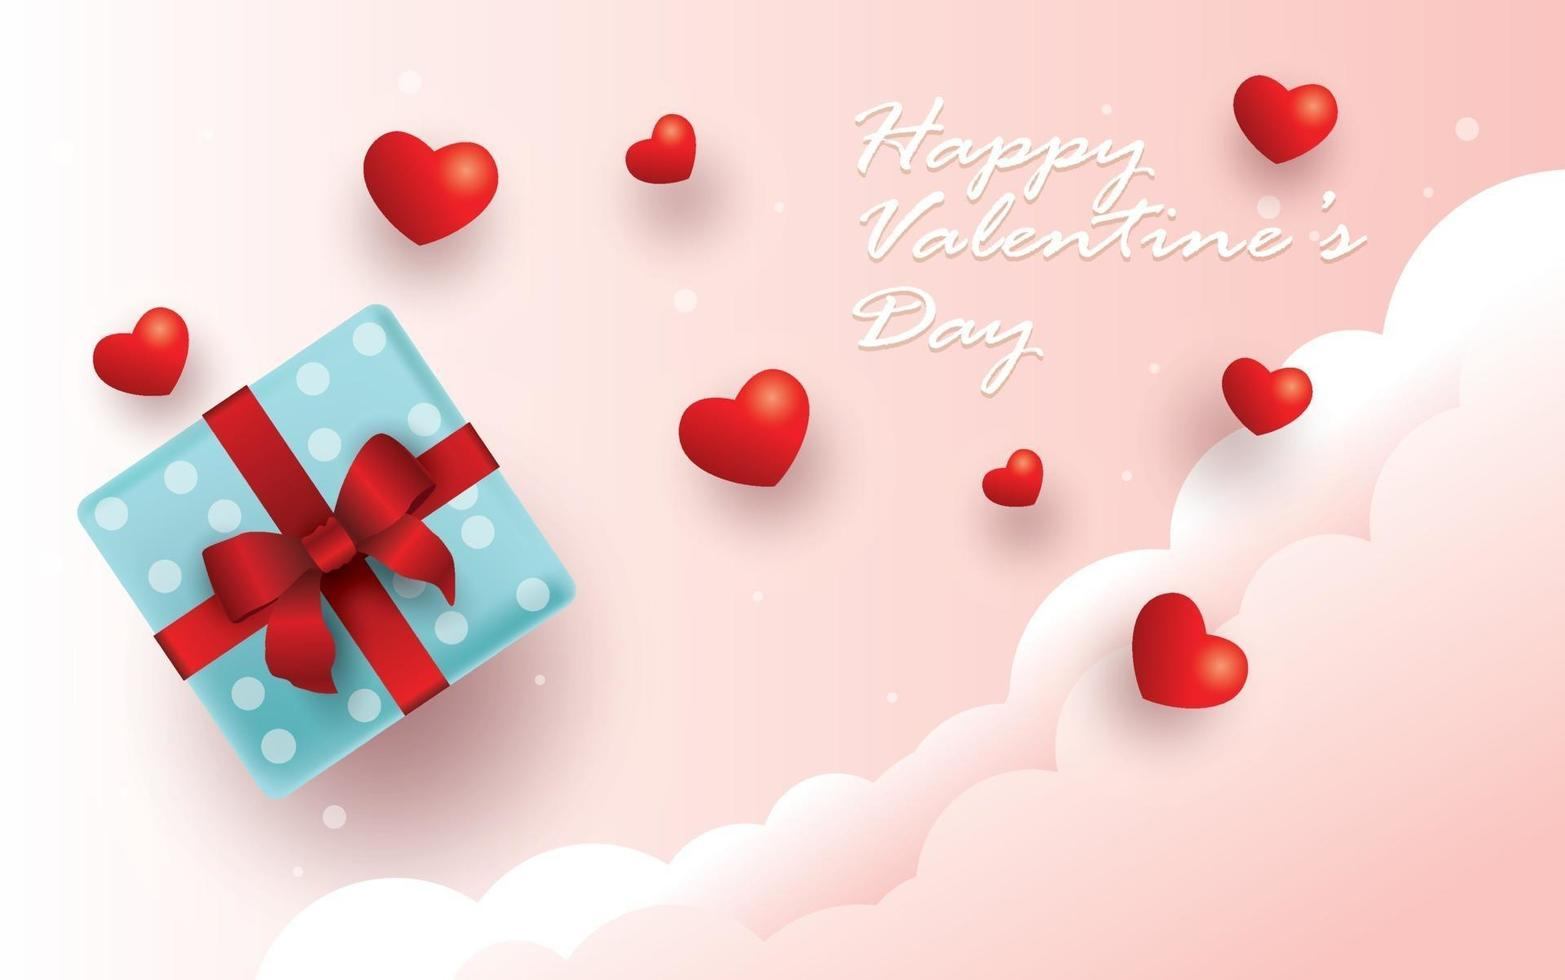 Happy Valentine S Day Gift Box And Hearts Background Download Free Vectors Clipart Graphics Vector Art